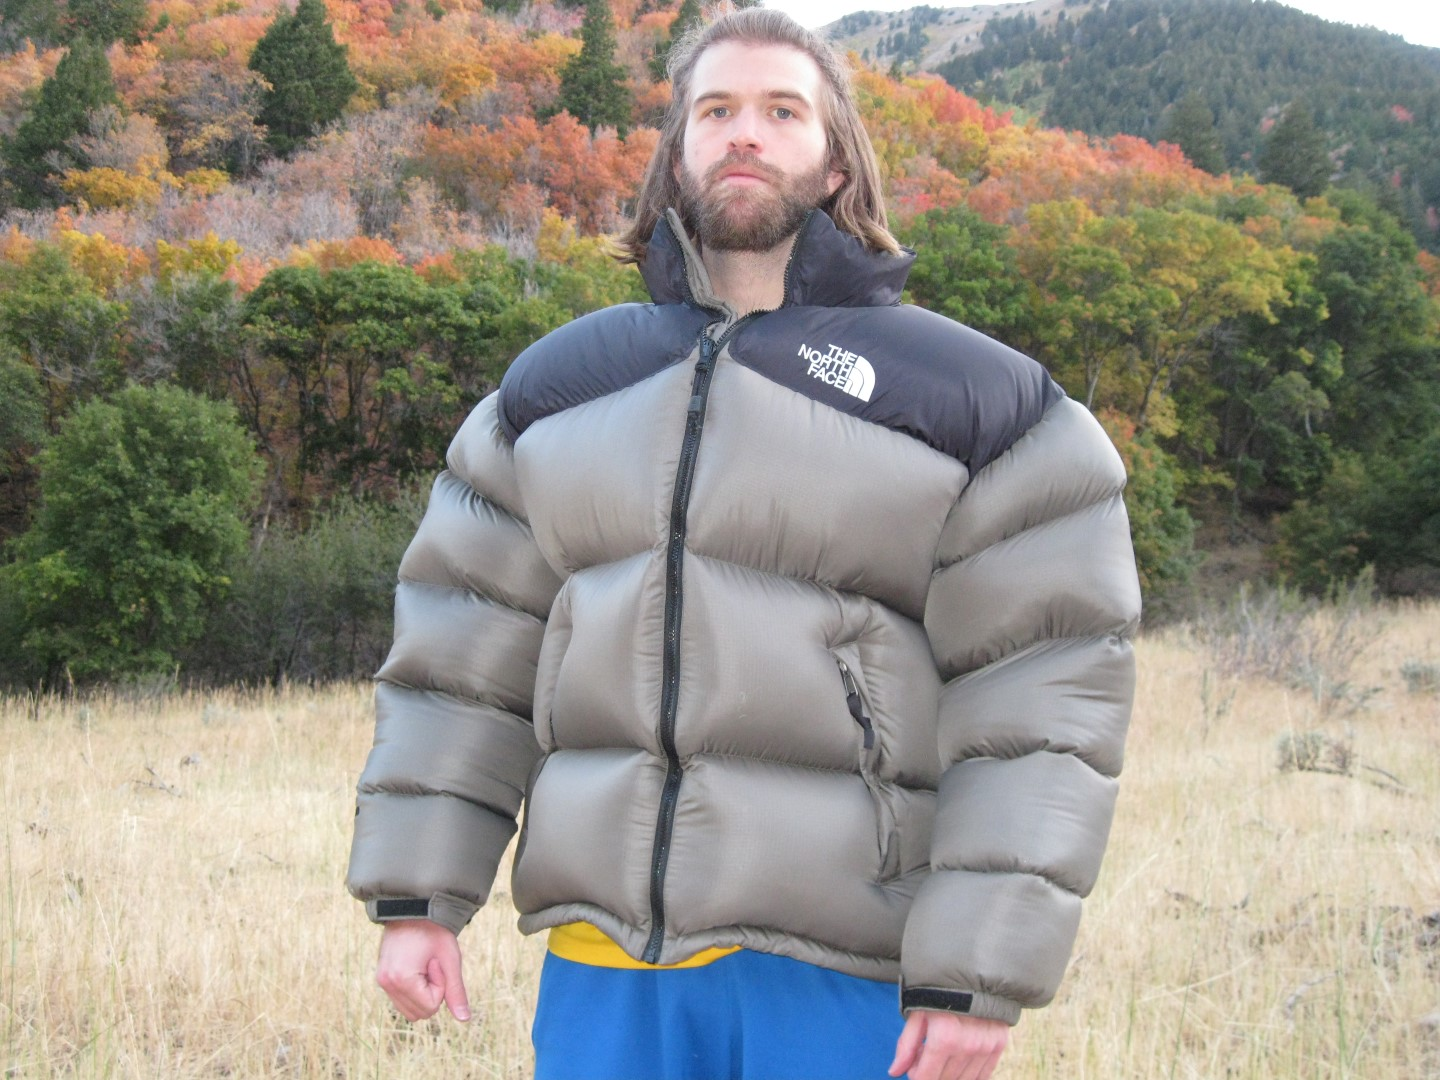 21751ad69e Jacket Weather. I would like to introduce our new Viking models!! Wearing a  massive 3XL Nuptse